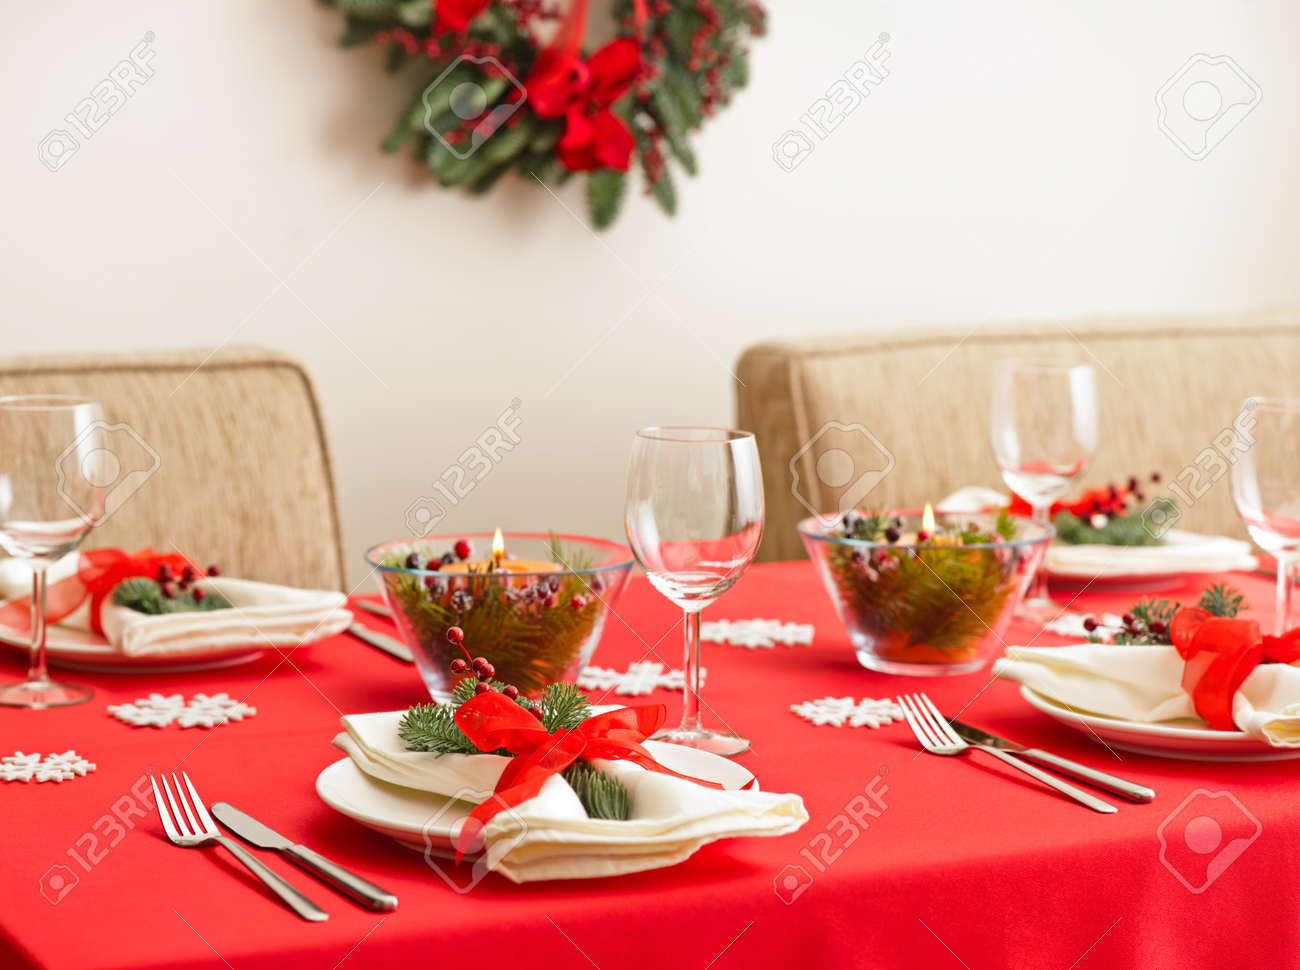 Christmas Dinner Table Setting With Real Tree Decoration Stock Photo